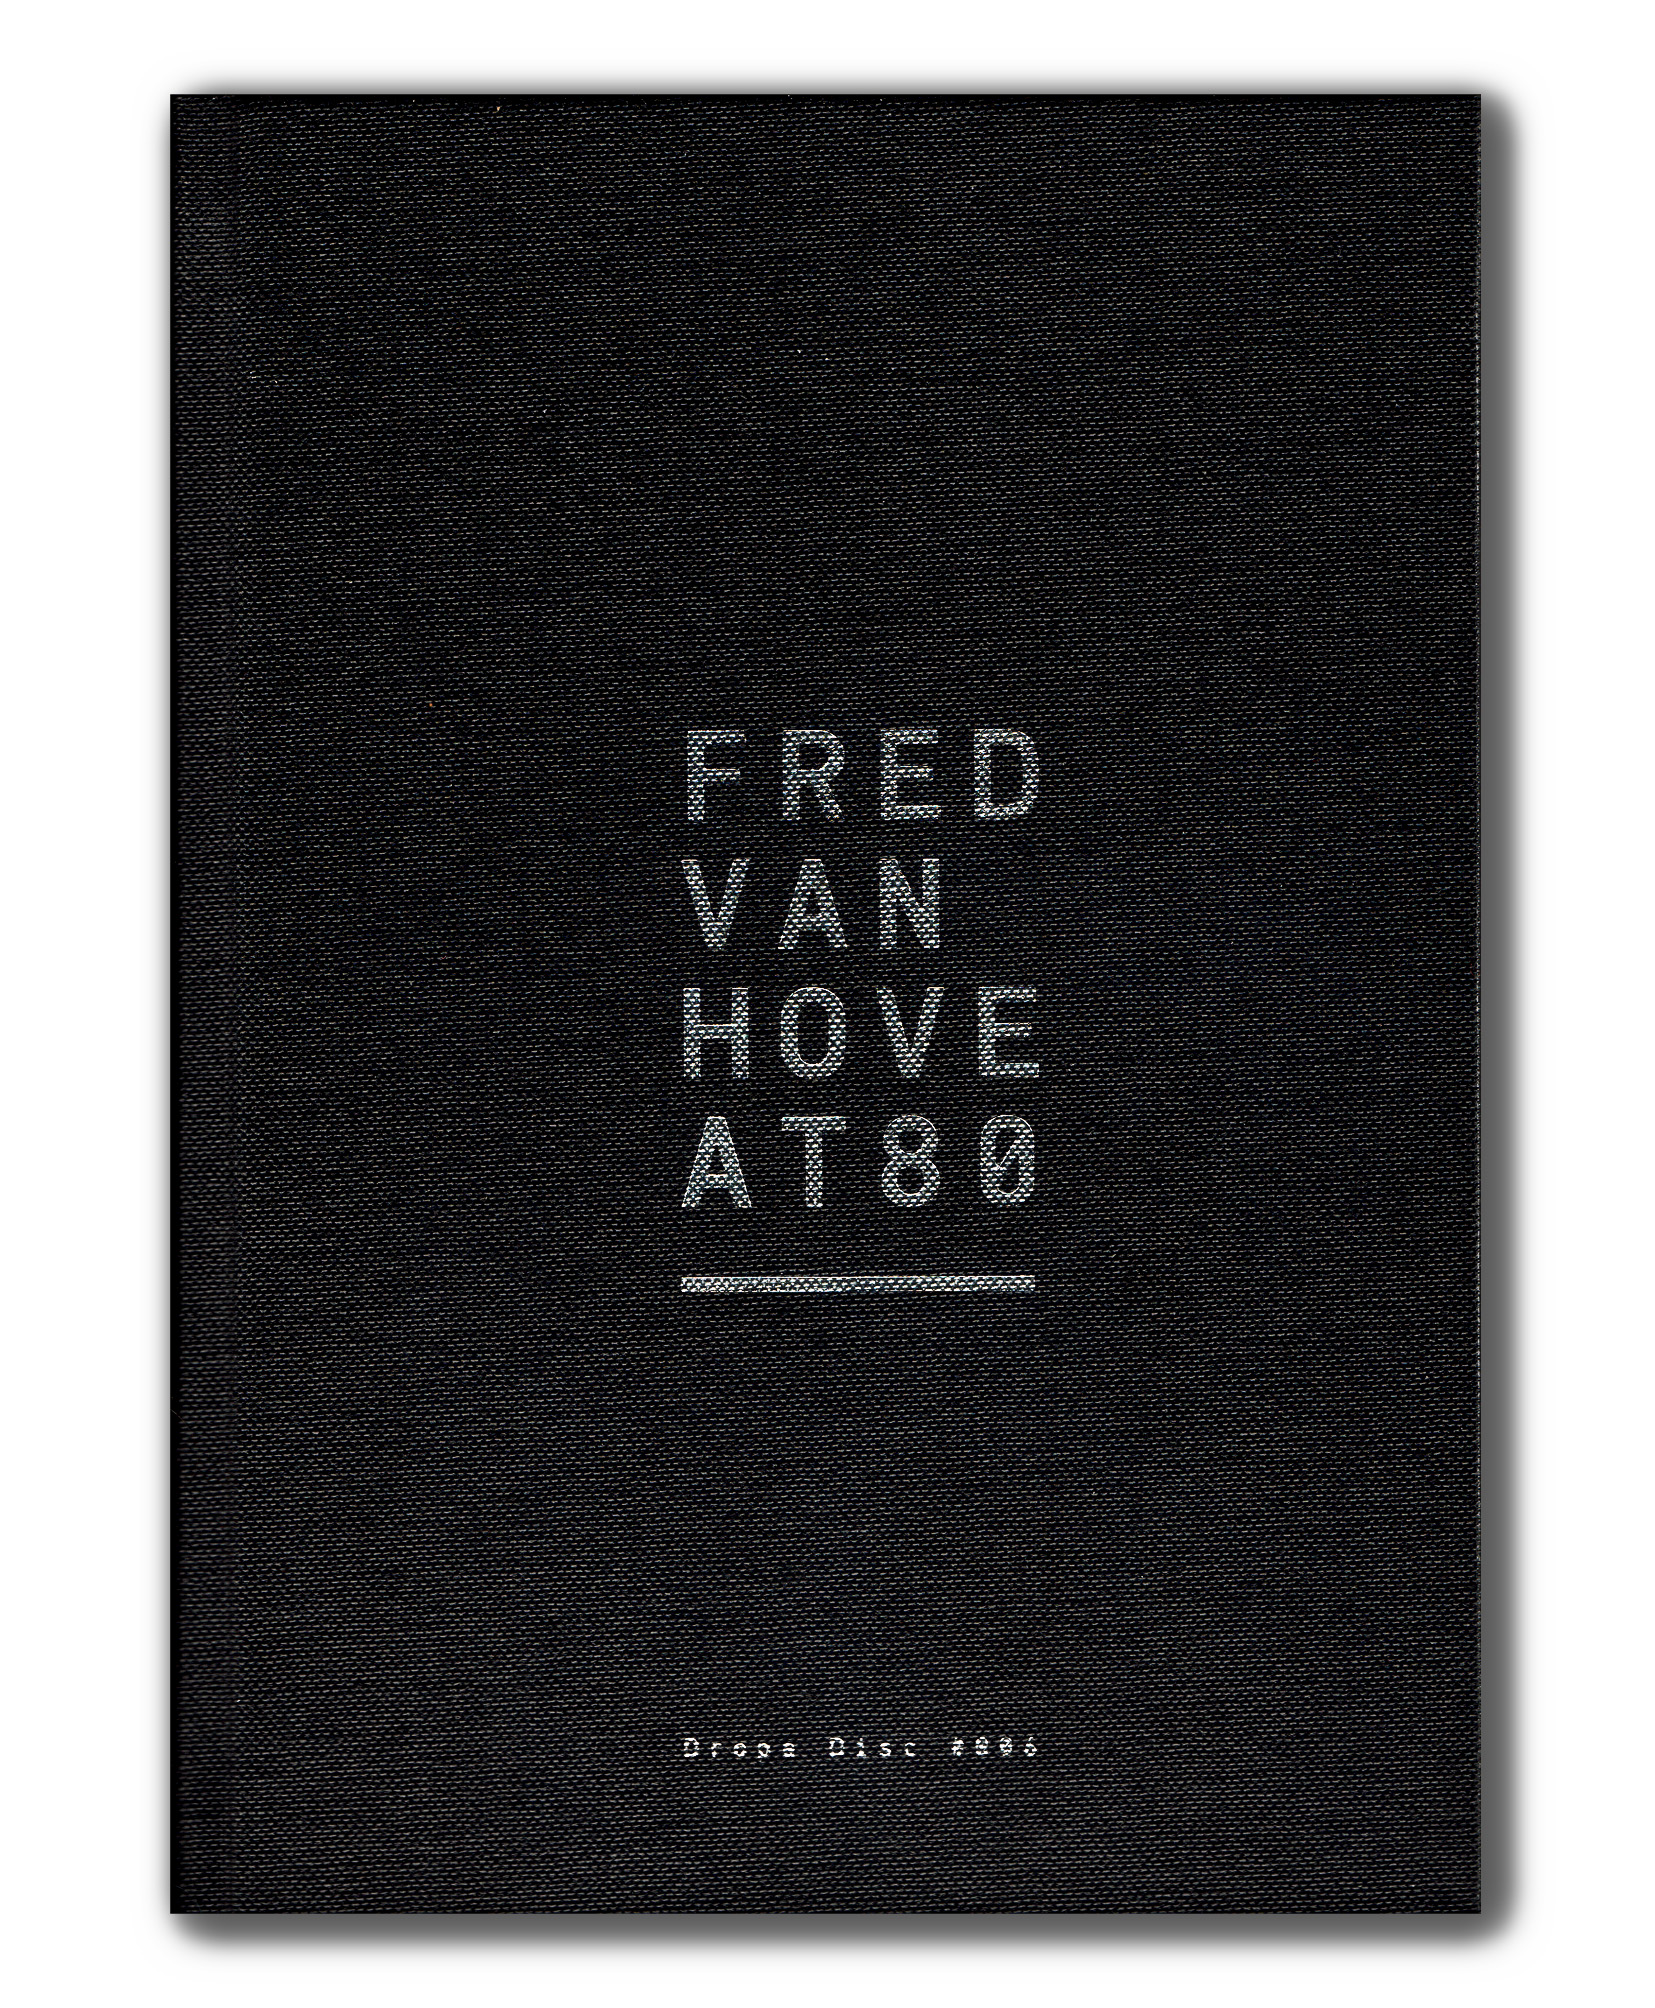 FRED VAN HOVE AT 80 – 3 x CD / BOEK